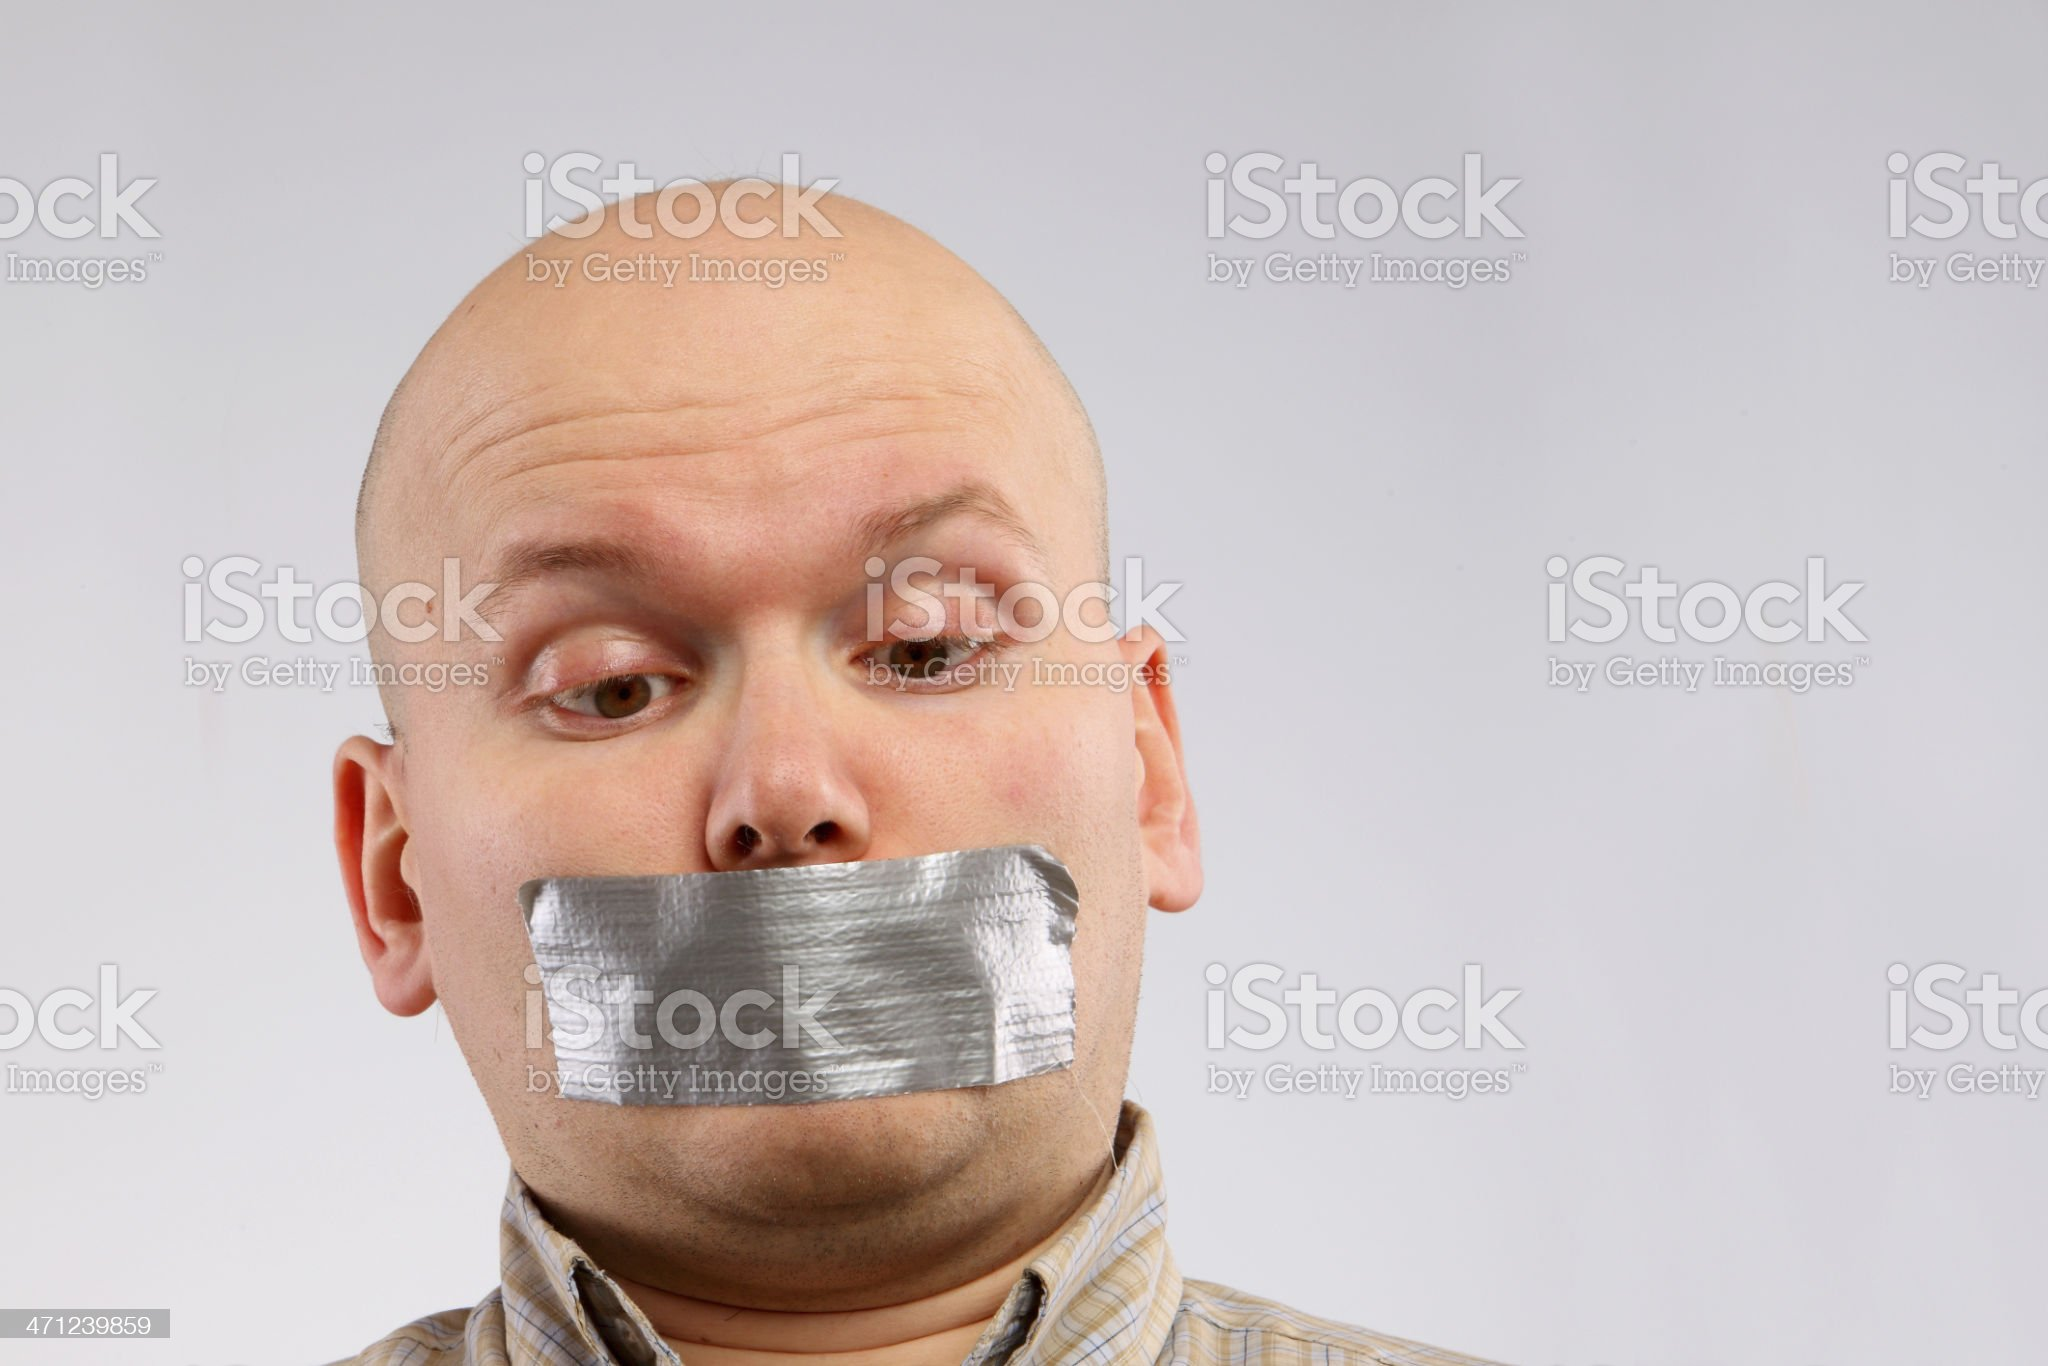 Bald man with the grey tape taped up on mouth royalty-free stock photo